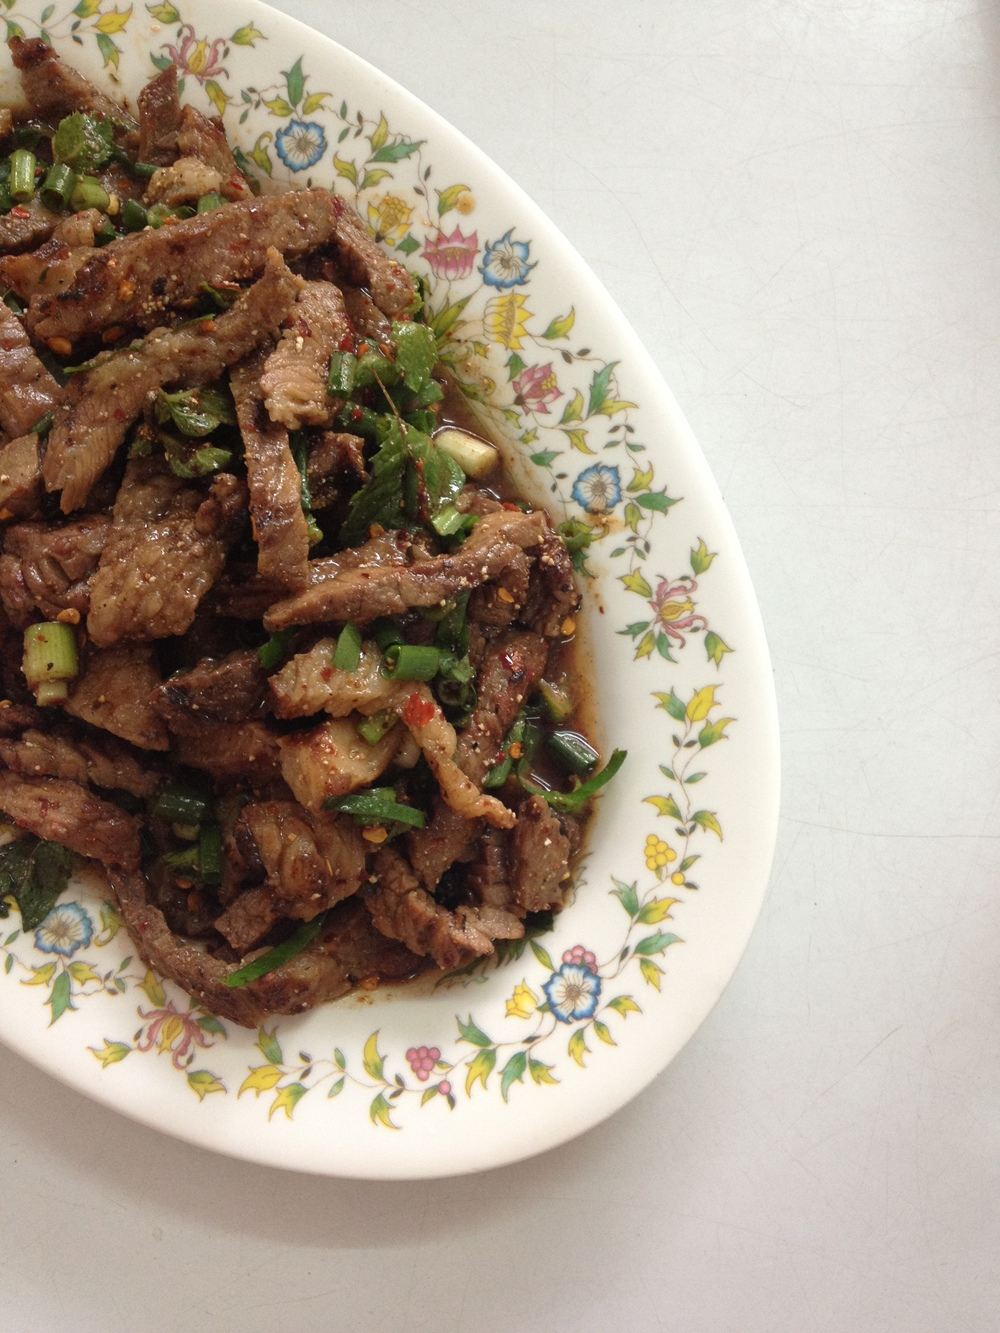 Moo nam thok, a spicy meat salad